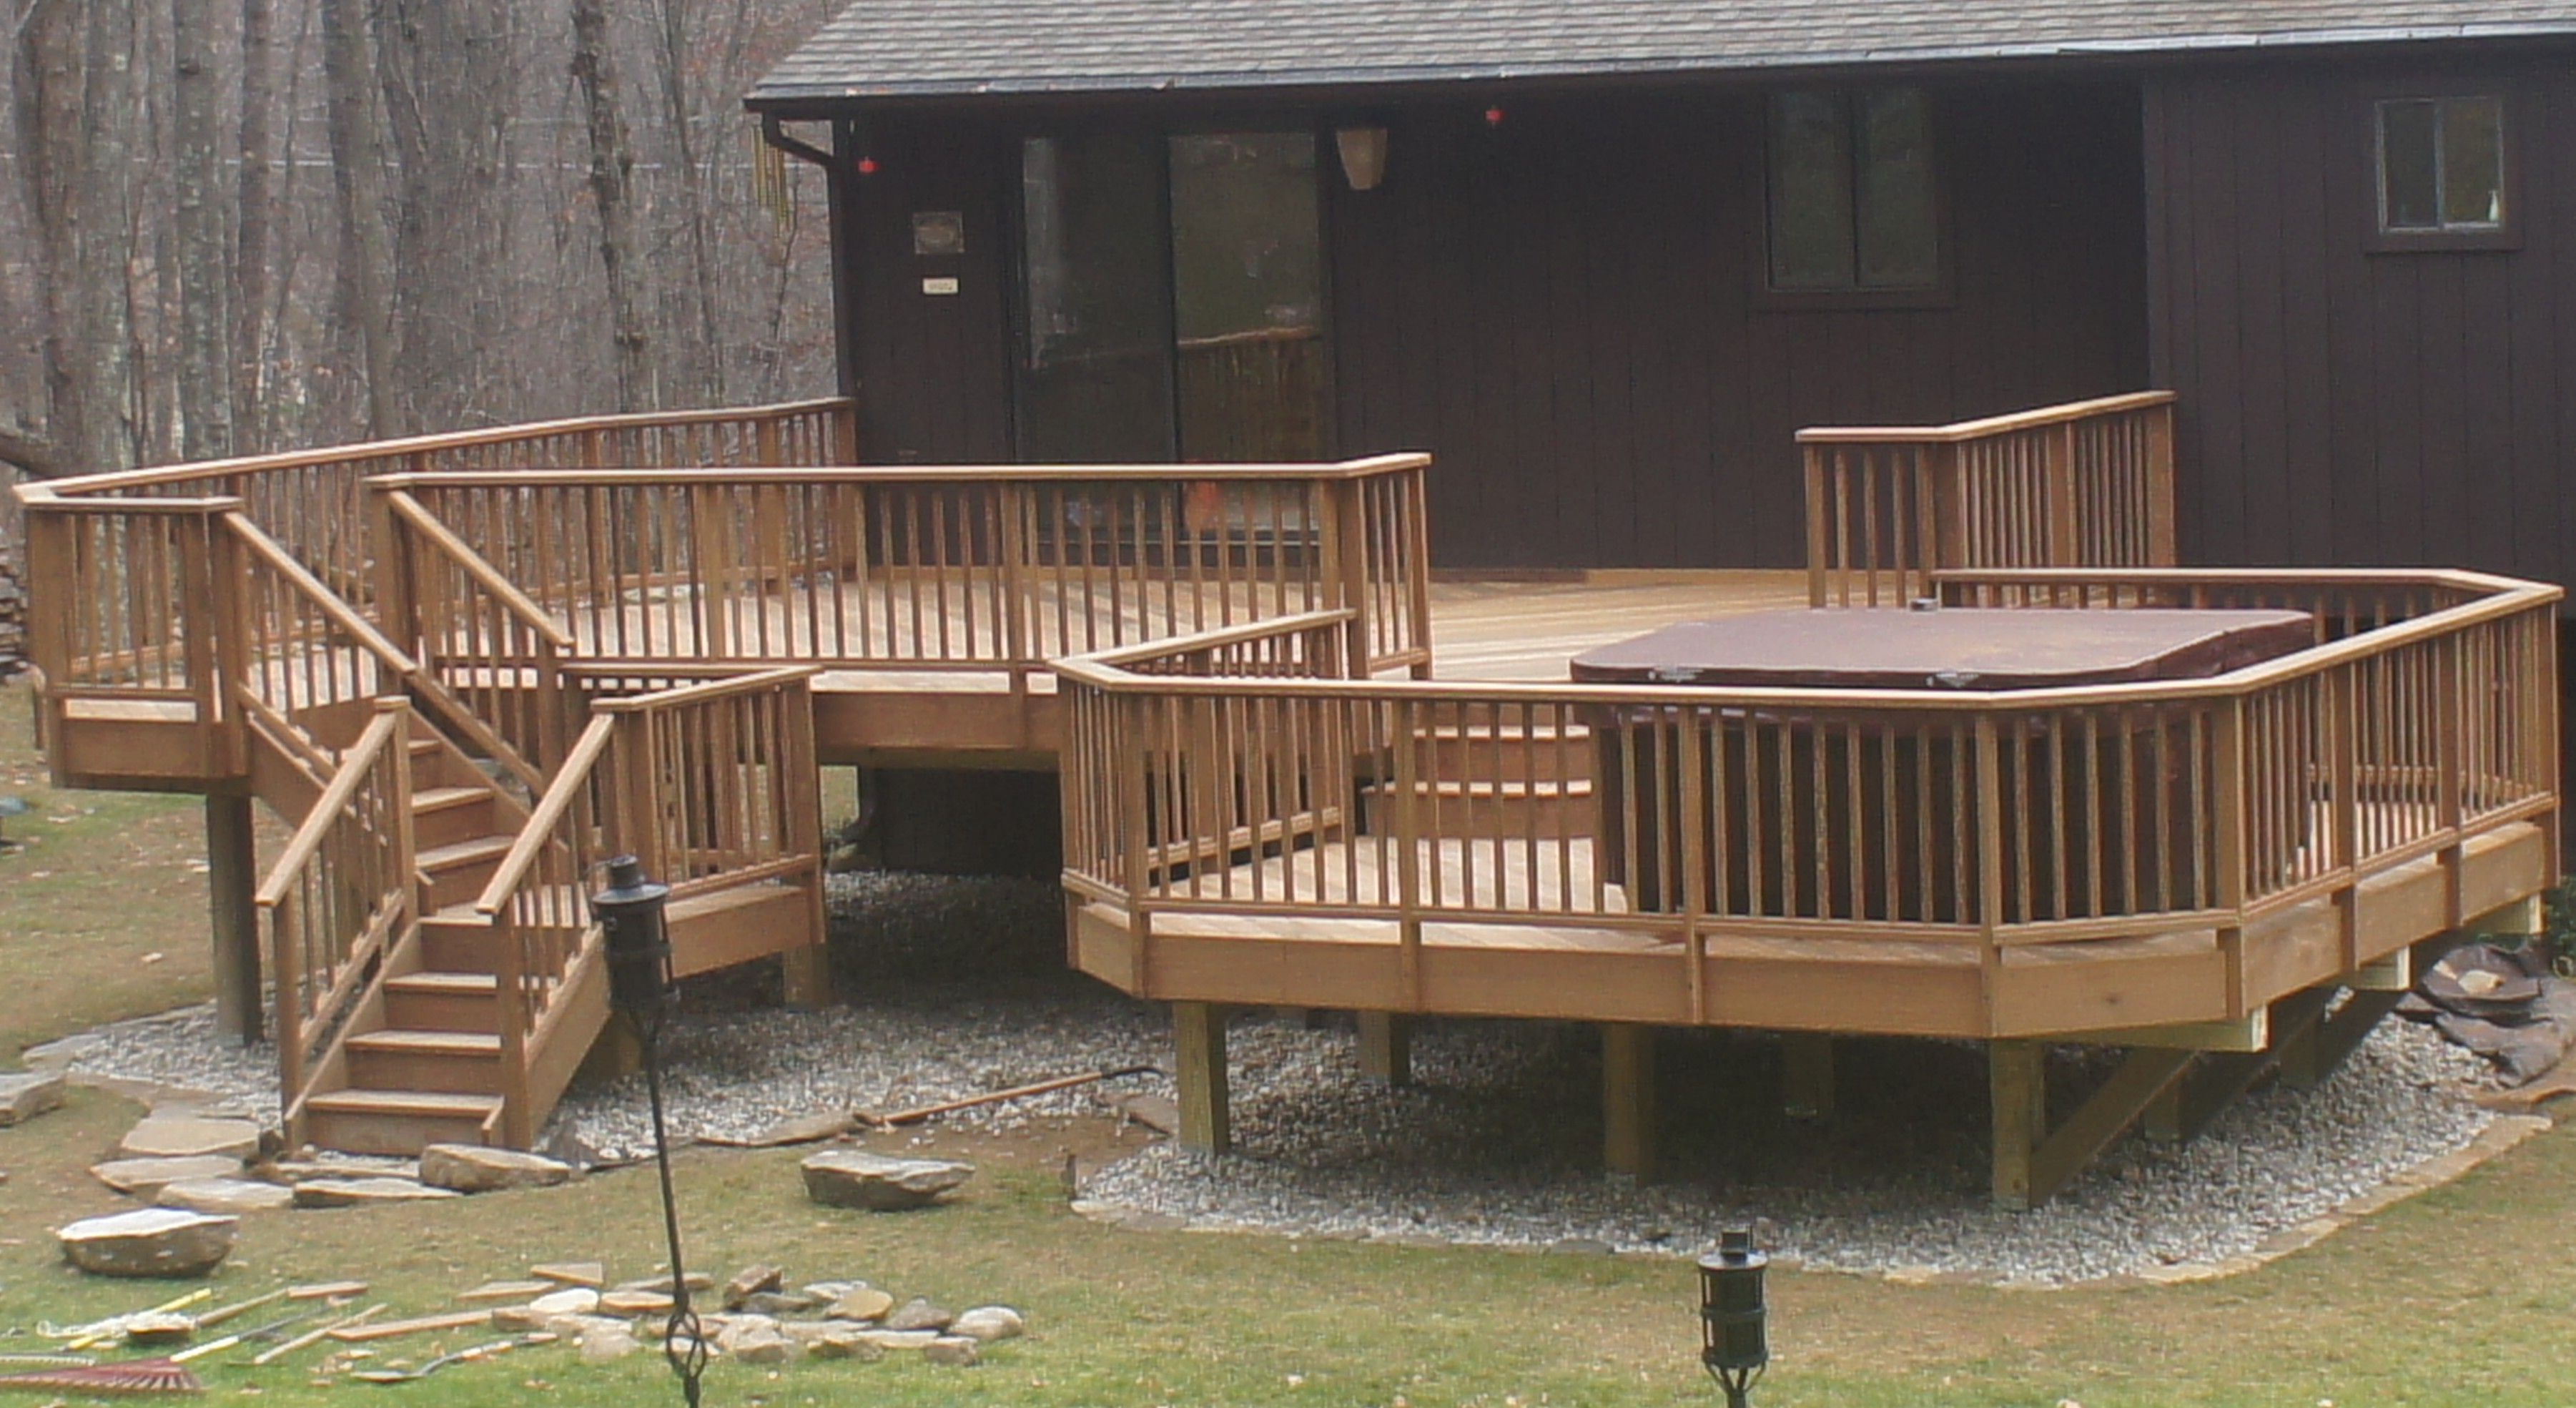 pools spa cost backyard and foyer deck tubs supplies u ground images designs with pool inspirational tub hot plans ideas